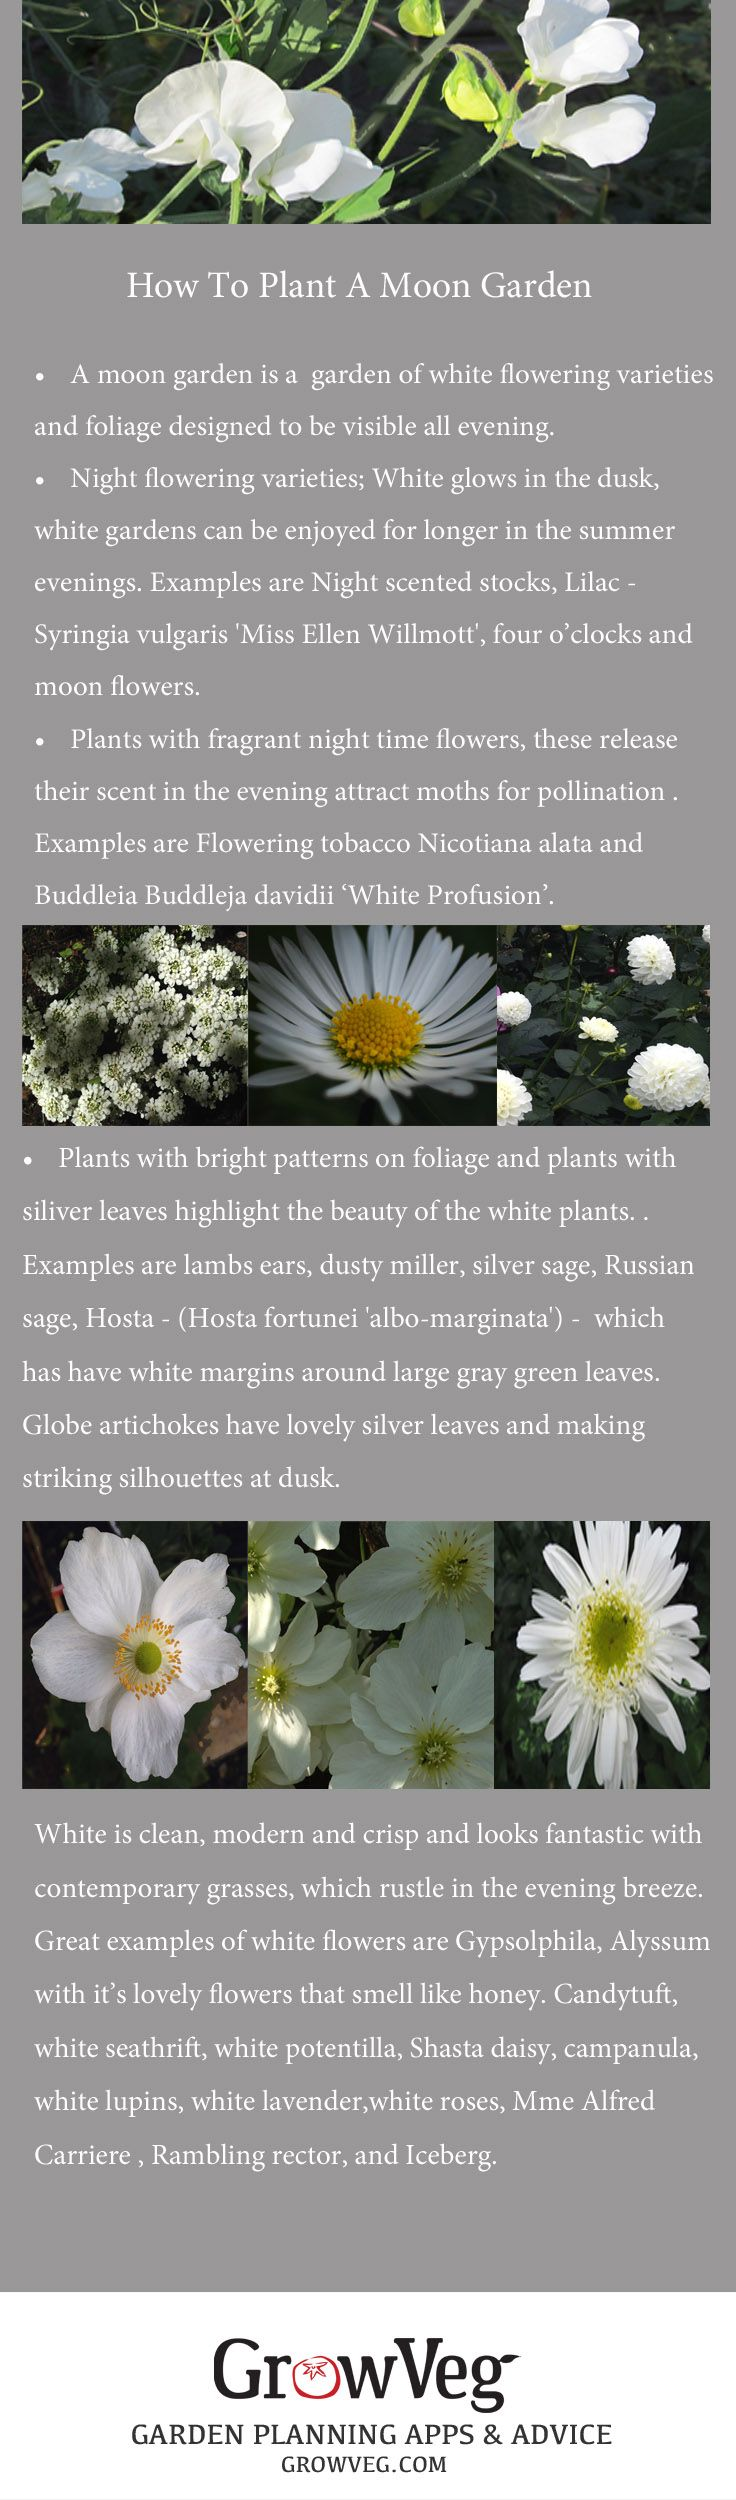 Moon or Twilight Garden How To, With beautiful, glowing white flowering plants. What a great idea.